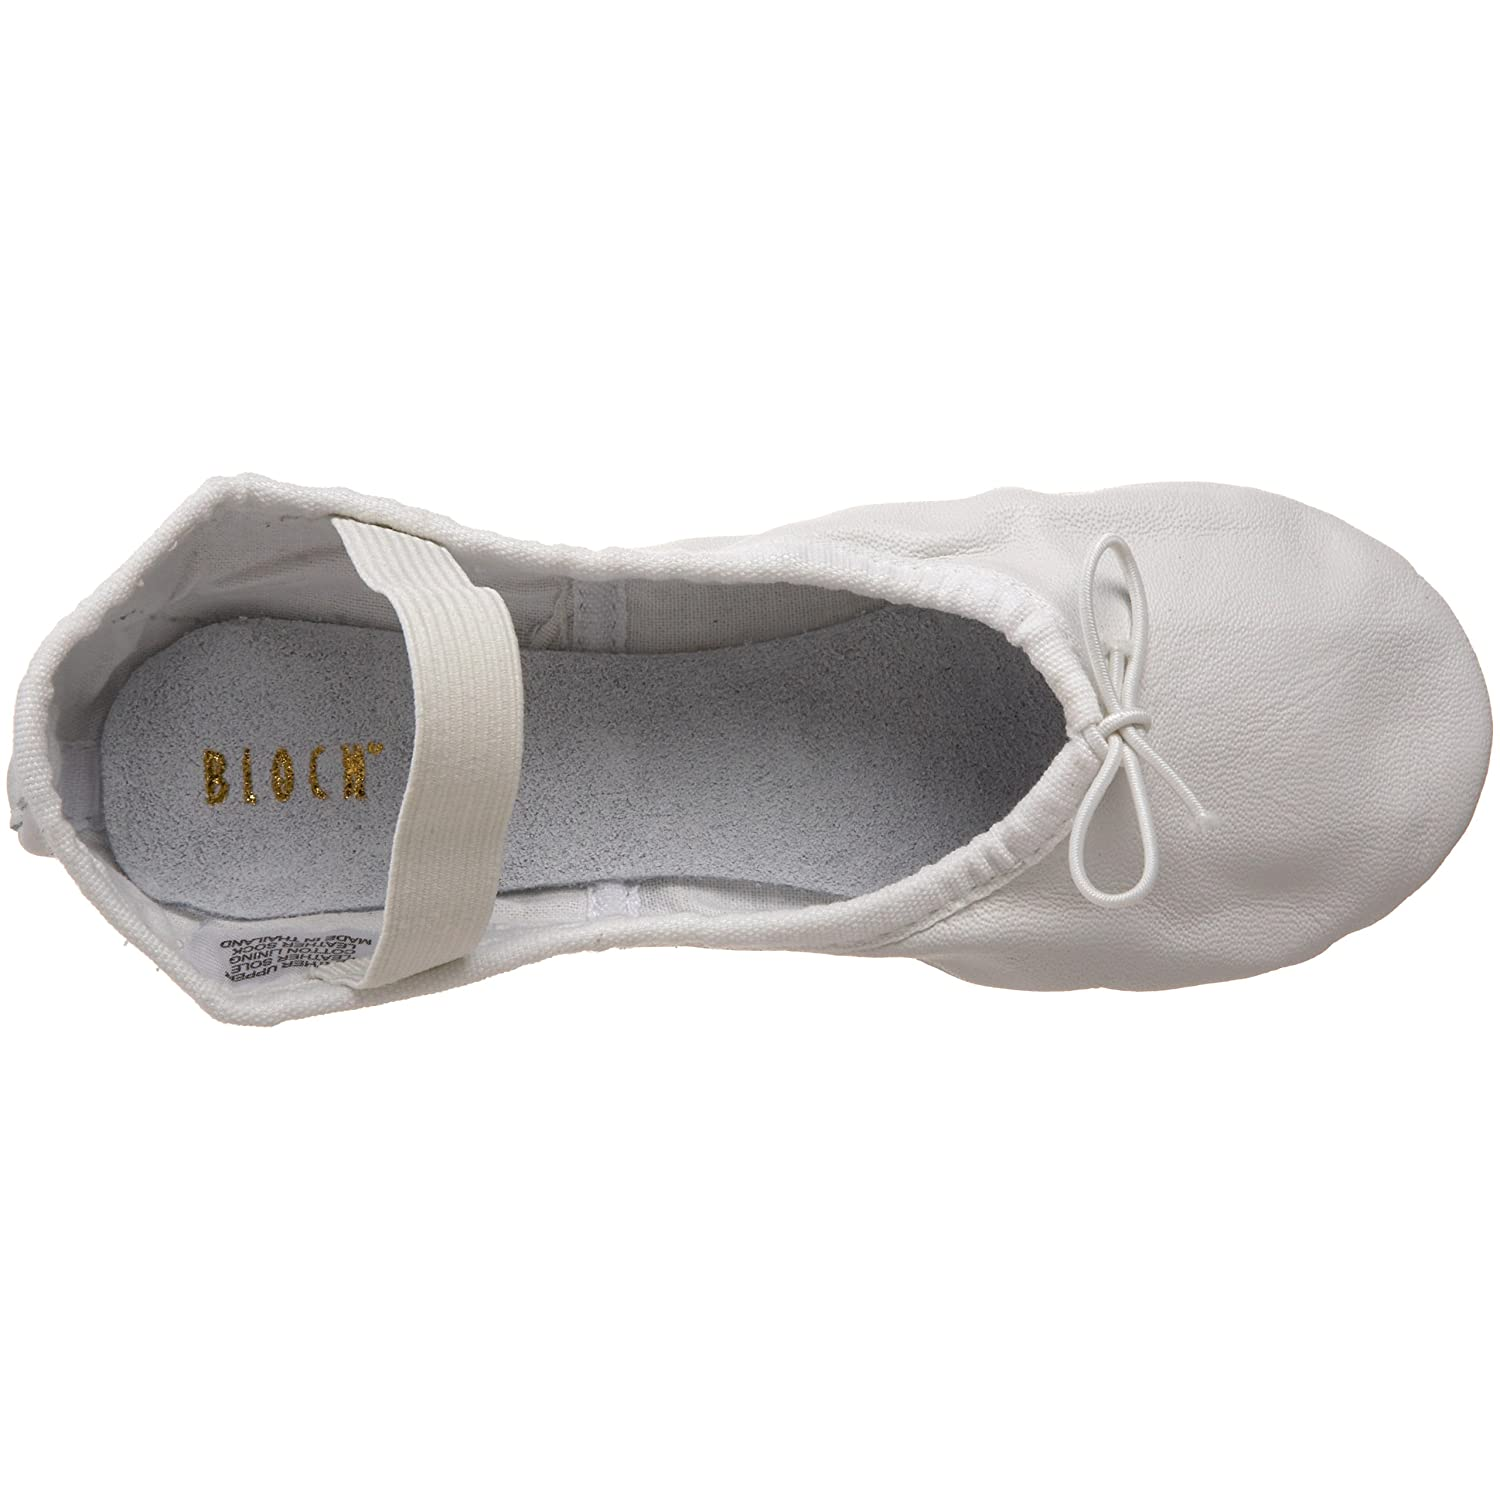 Bloch Dance Girls Dansoft Full Sole Leather Ballet Slipper//Shoe